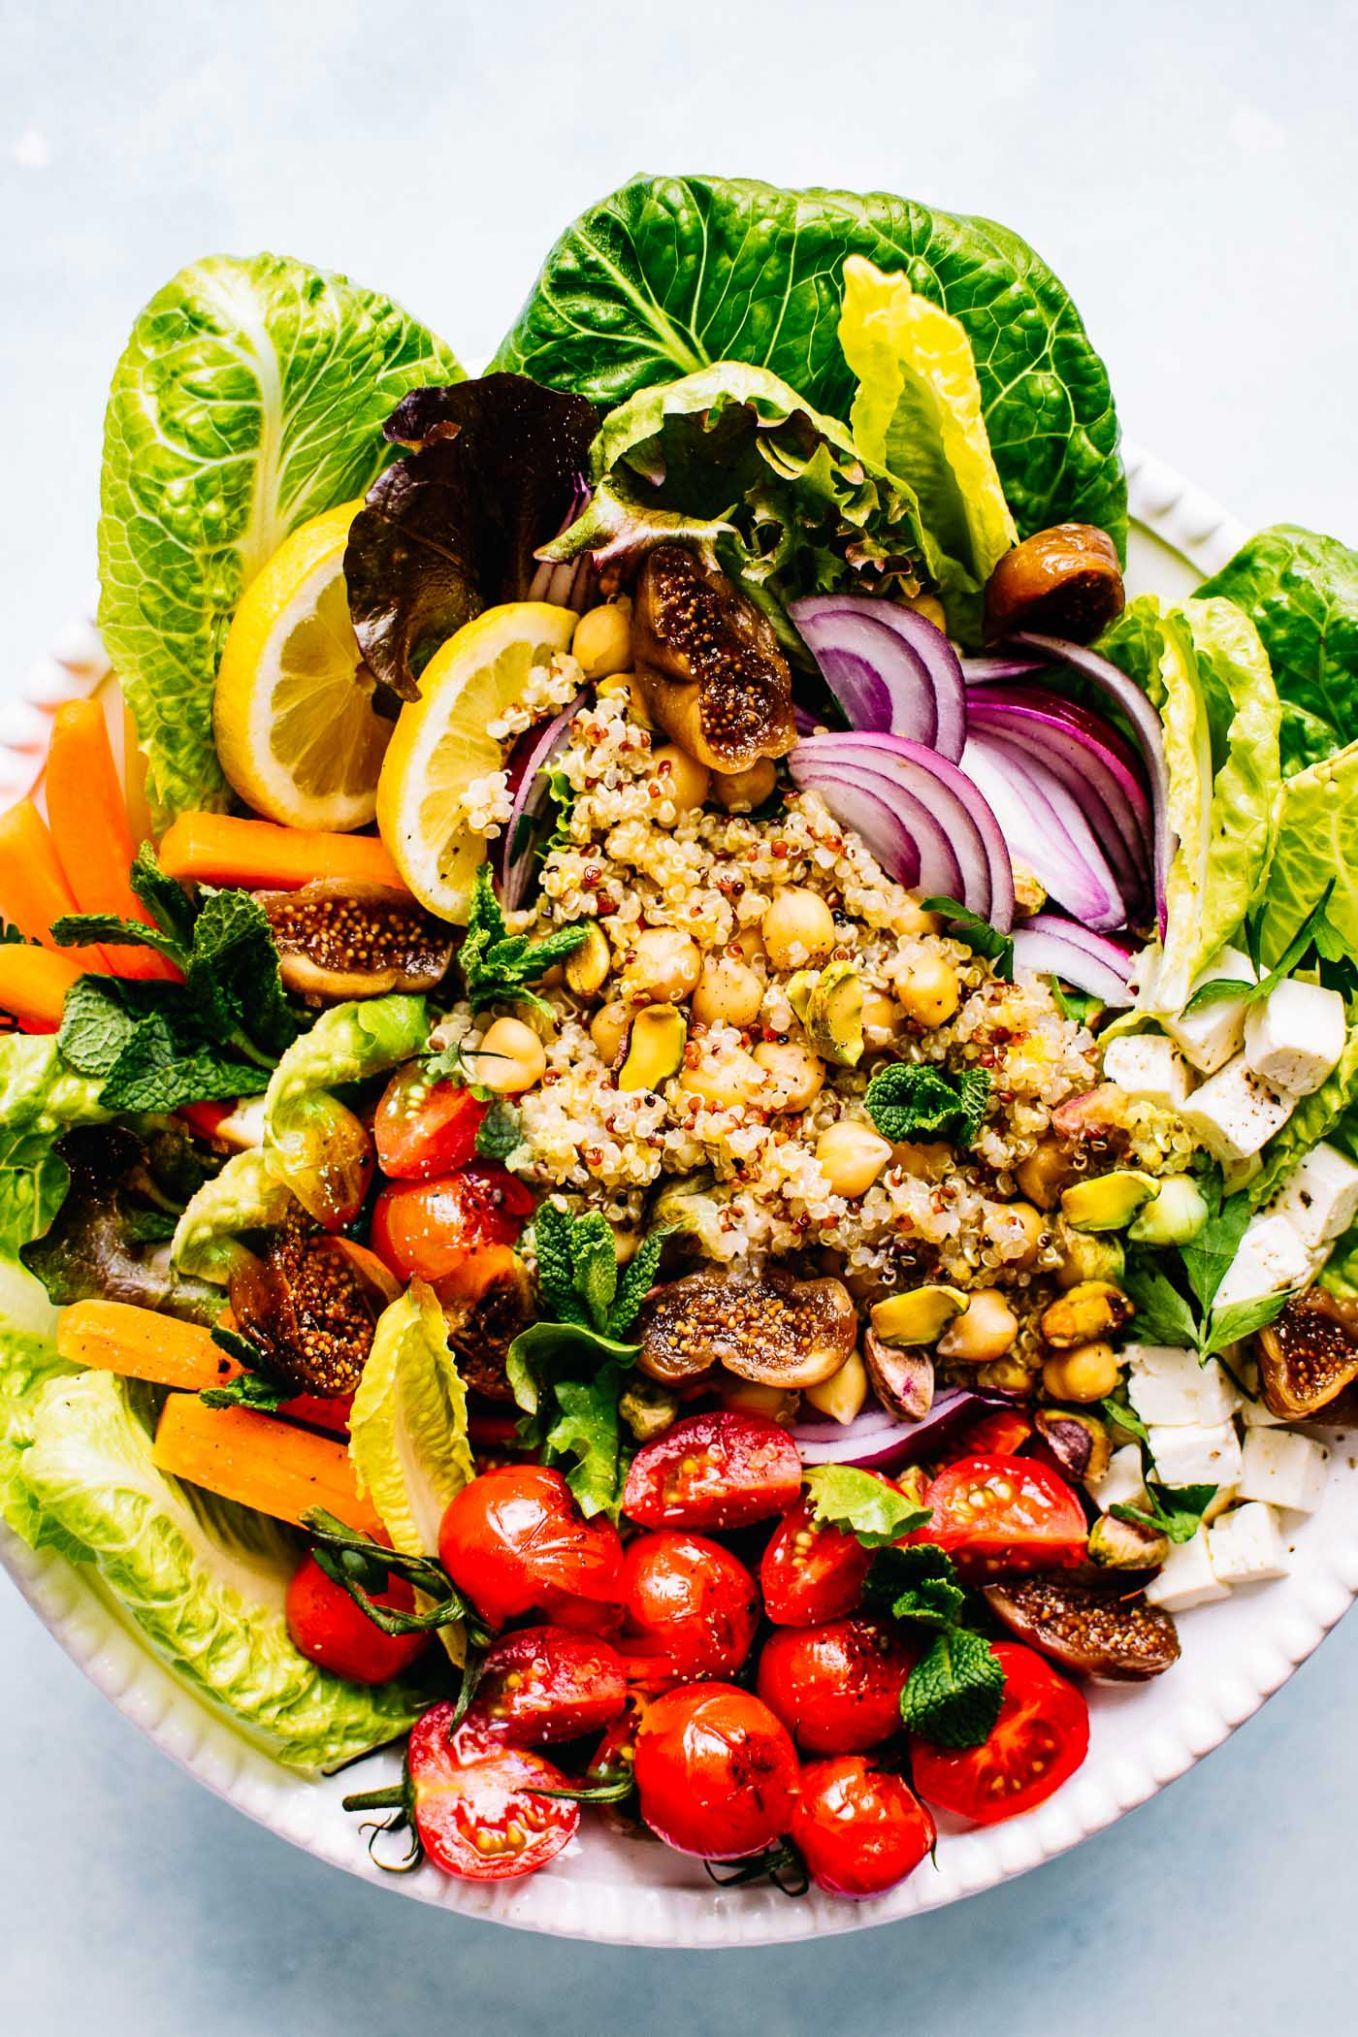 Moroccan Salad with Quinoa and Chickpeas - Salad Recipes Gluten Free